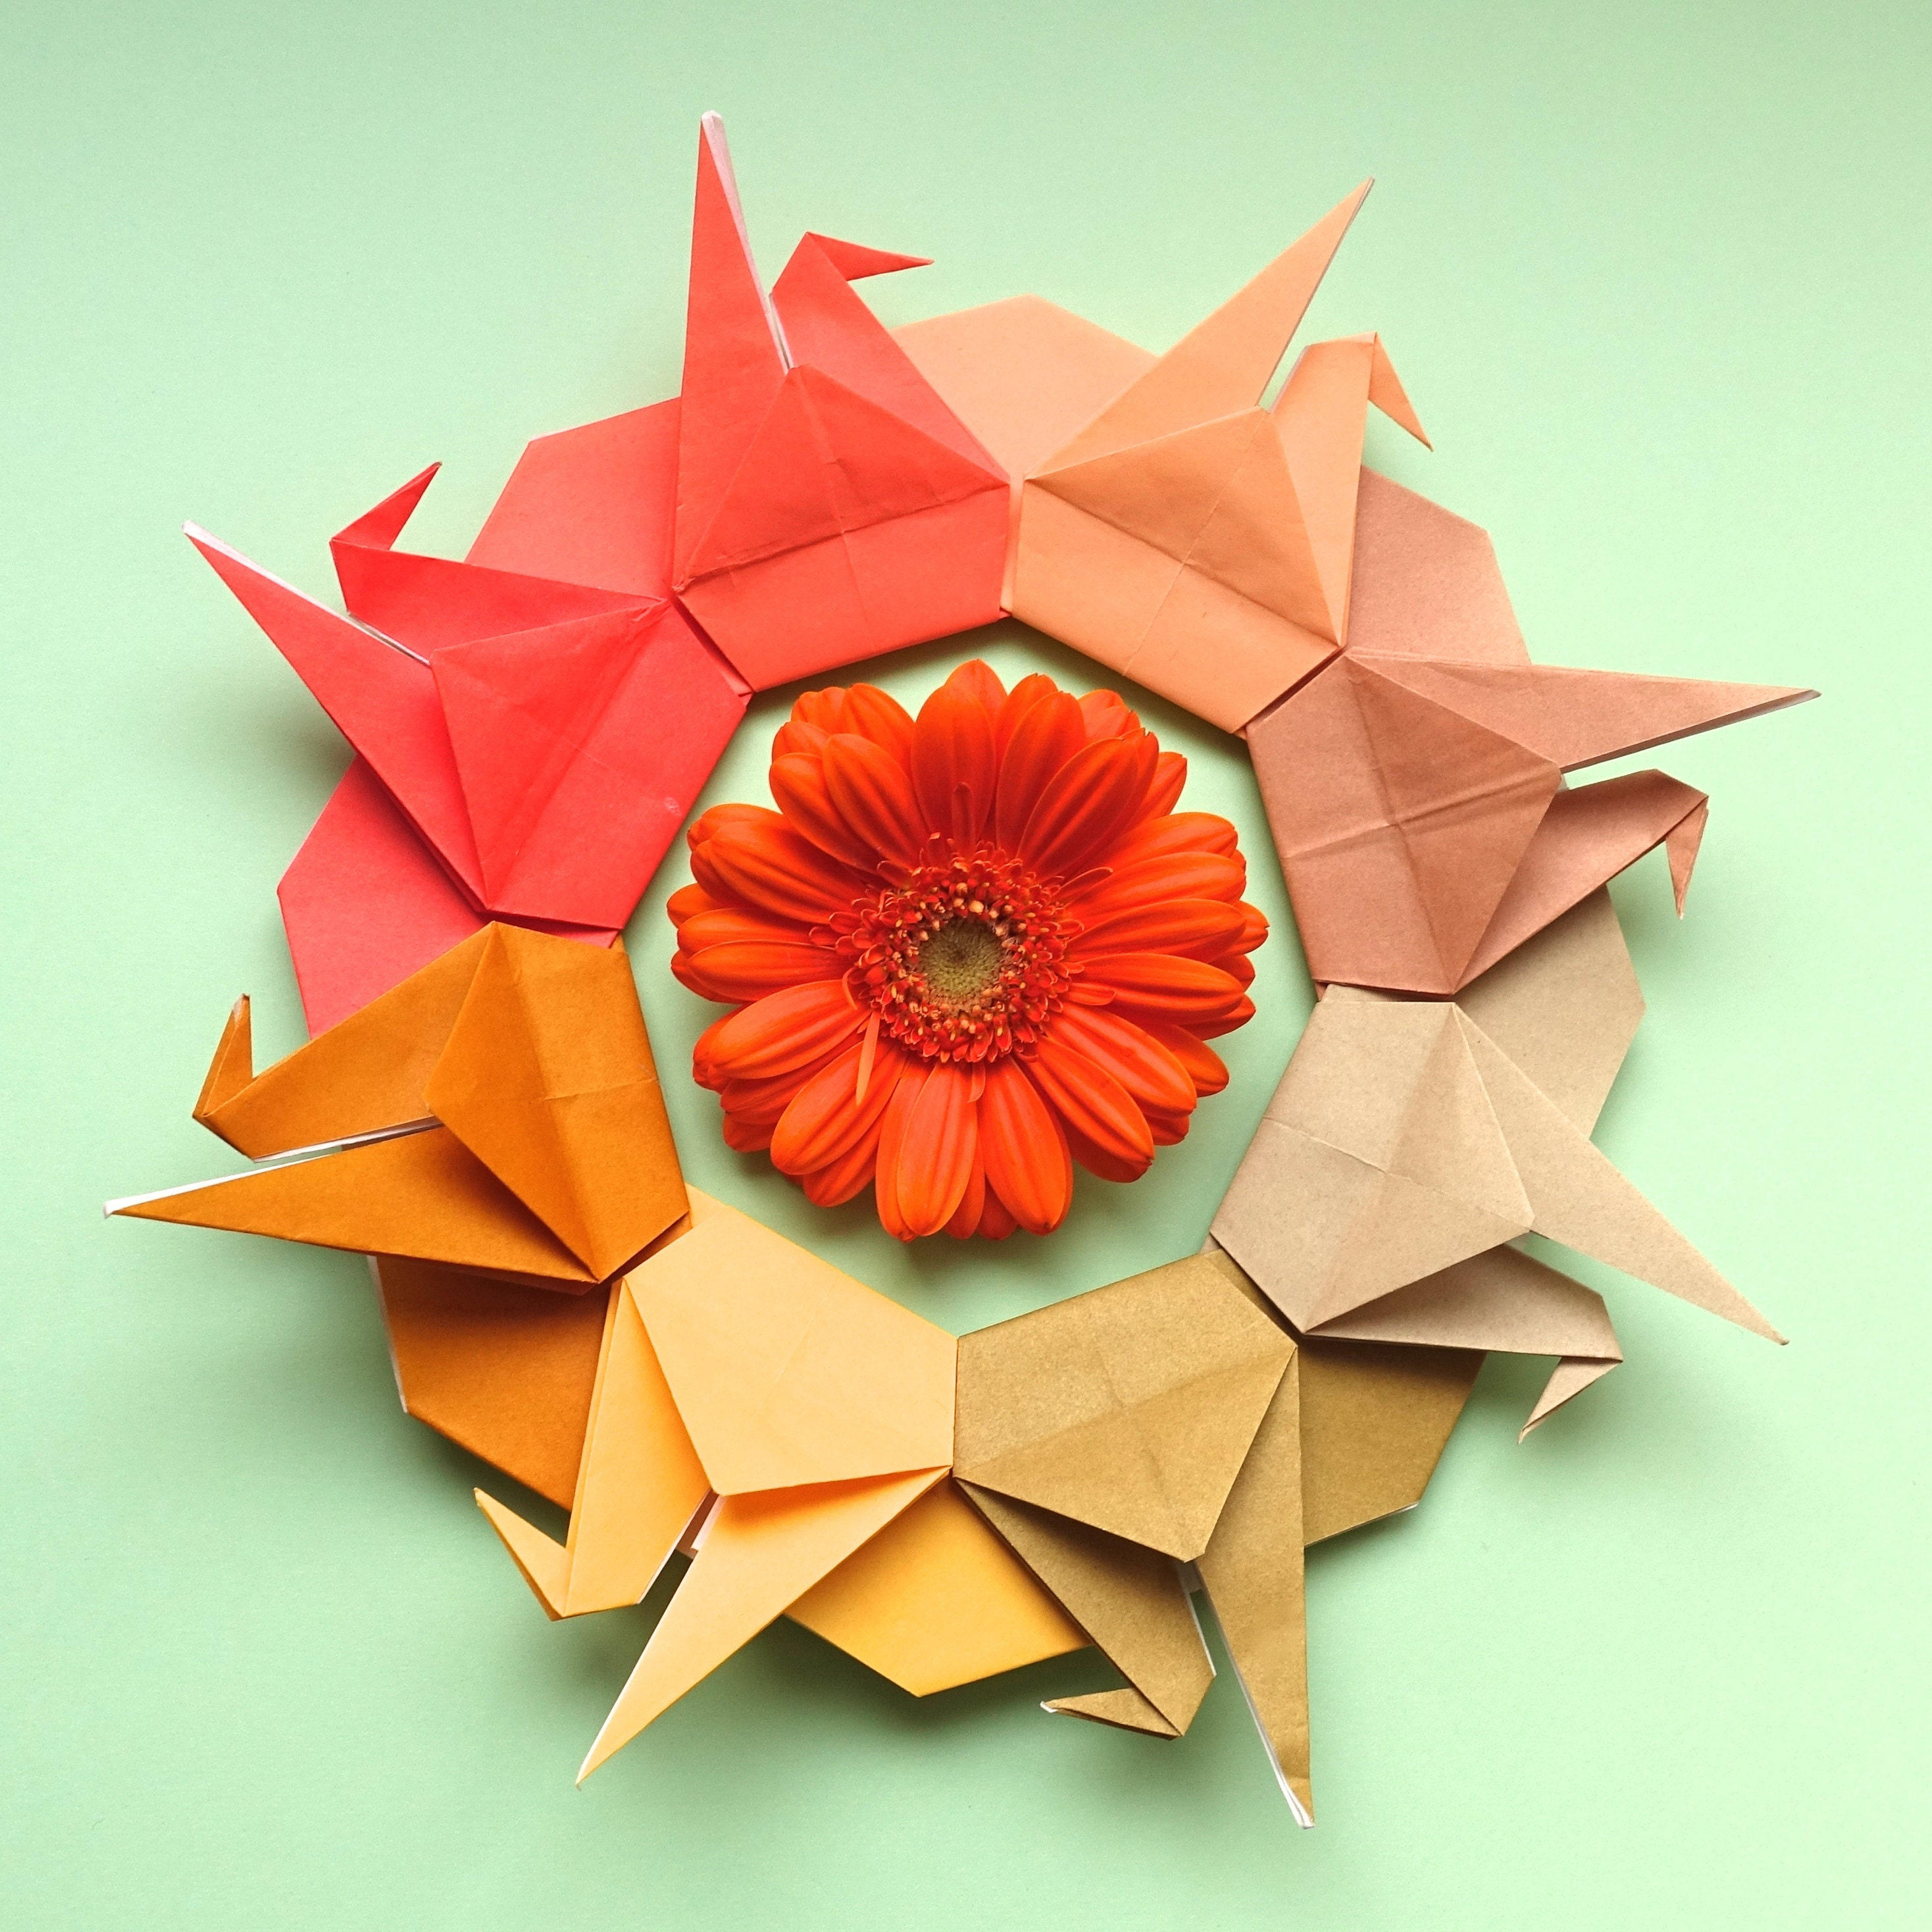 where to buy origami paper in toronto